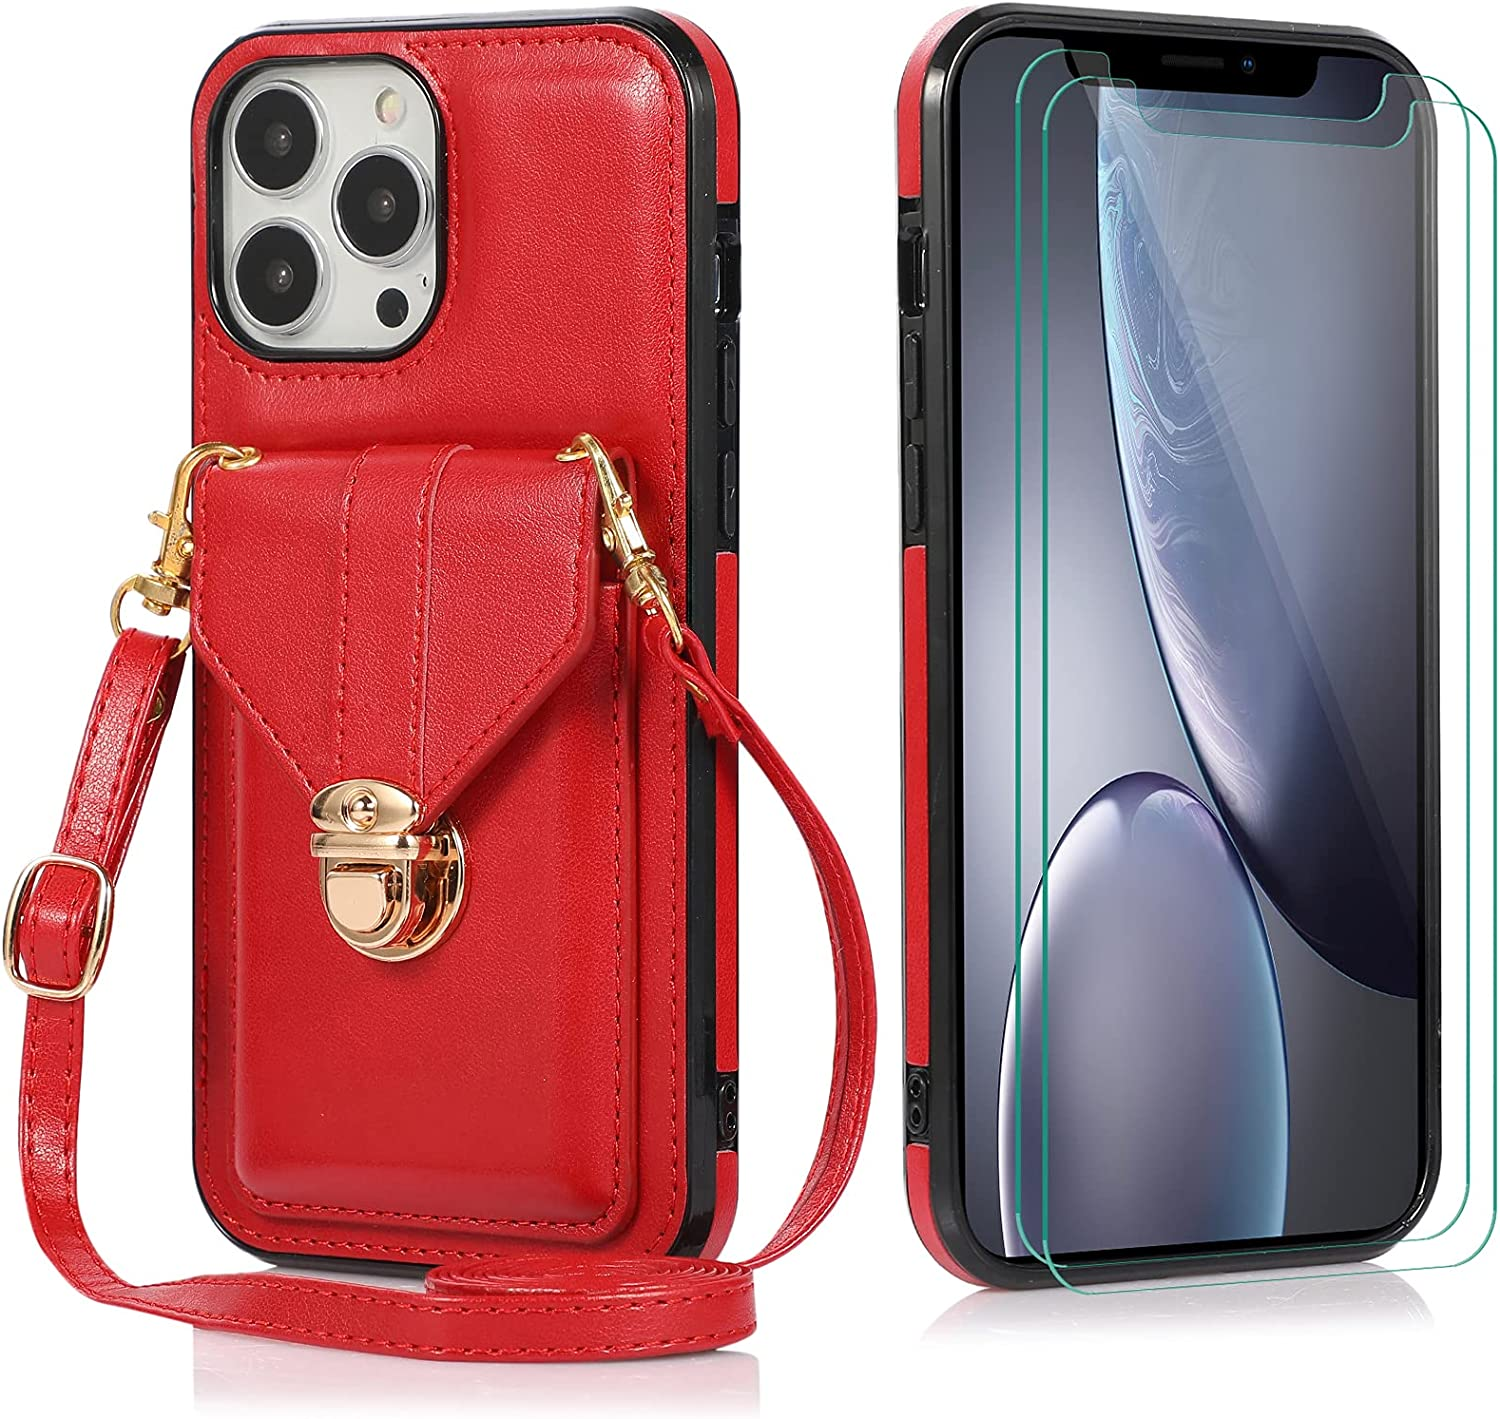 Futanwei Crossbody Slim Wallet Cases Compatible for iPhone 13 Pro Case with [2 Pack] Tempered Glass Screen Protector, Luxury Women's Card Holder Case with Crossbody Strap Lanyard, Red